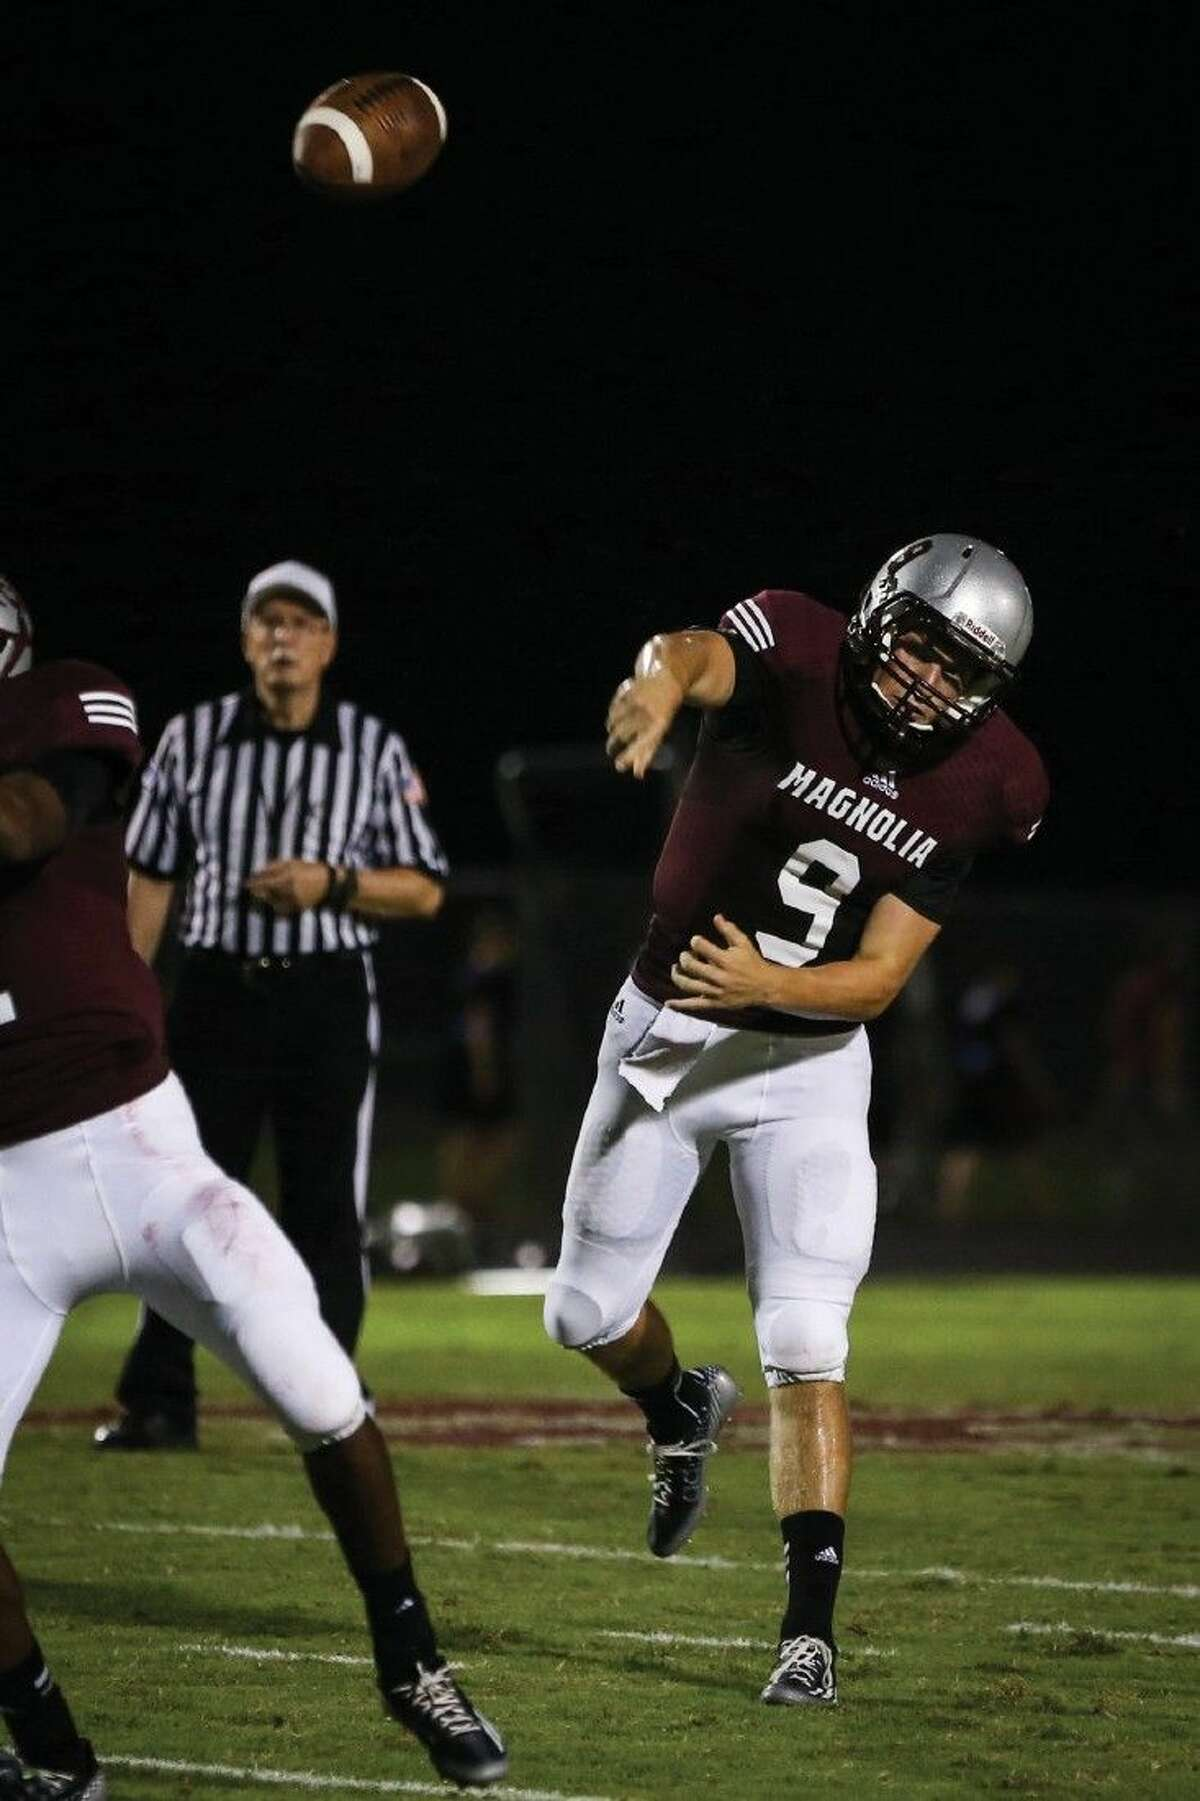 Photo by Michael Minasi/Magnolia's Jacob Frazier (9) throws a pass during the high school football game against Willis on Friday, Sept. 12, 2014, at Magnolia High School. To view or purchase this photo and others like it, go to HCNPics.com.